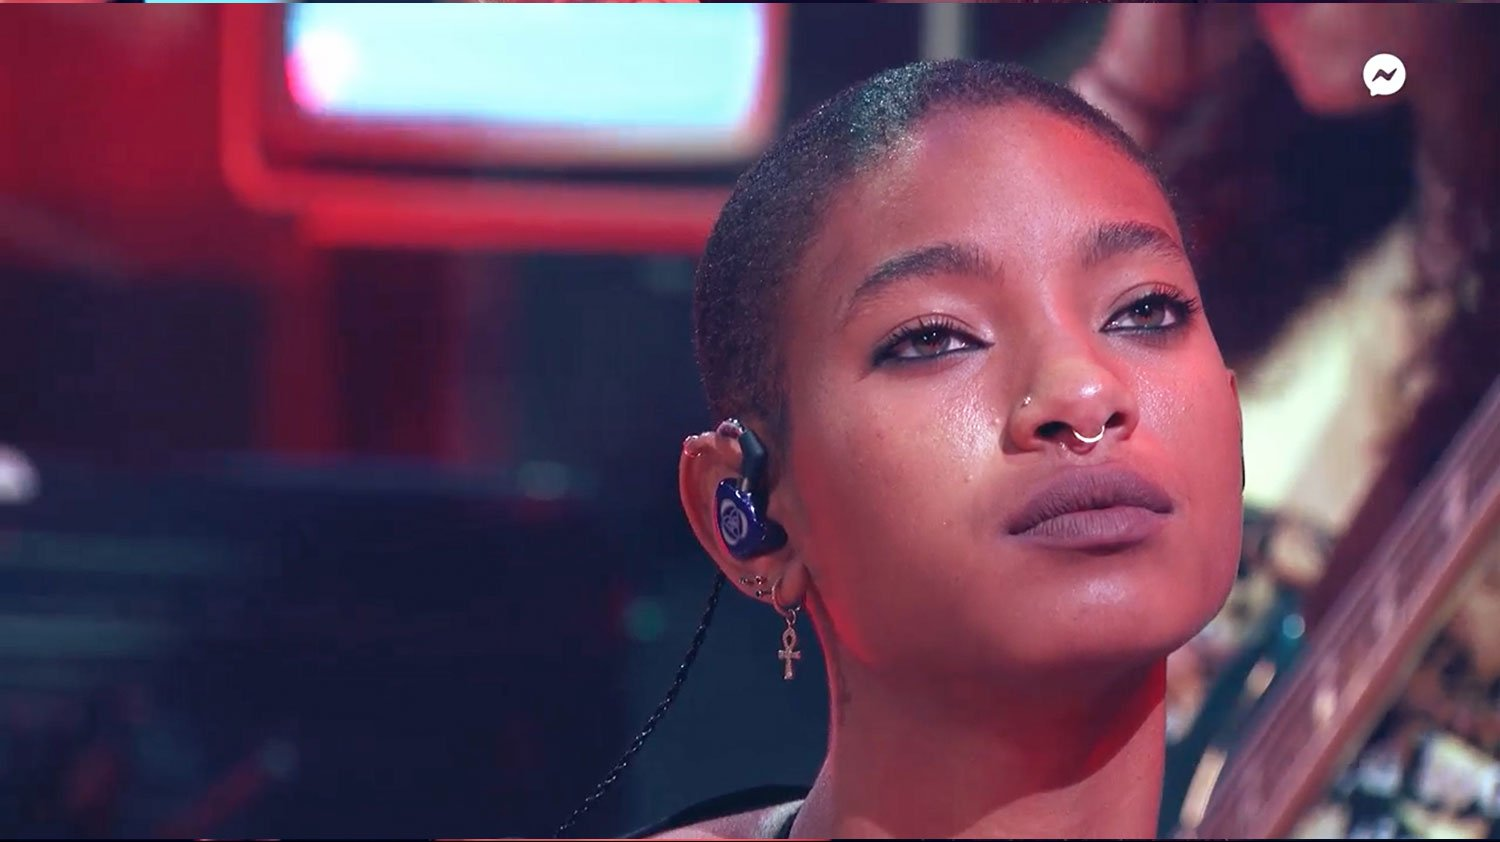 Video: Willow Smith has her head shaved while performing 'Whip My Hair'